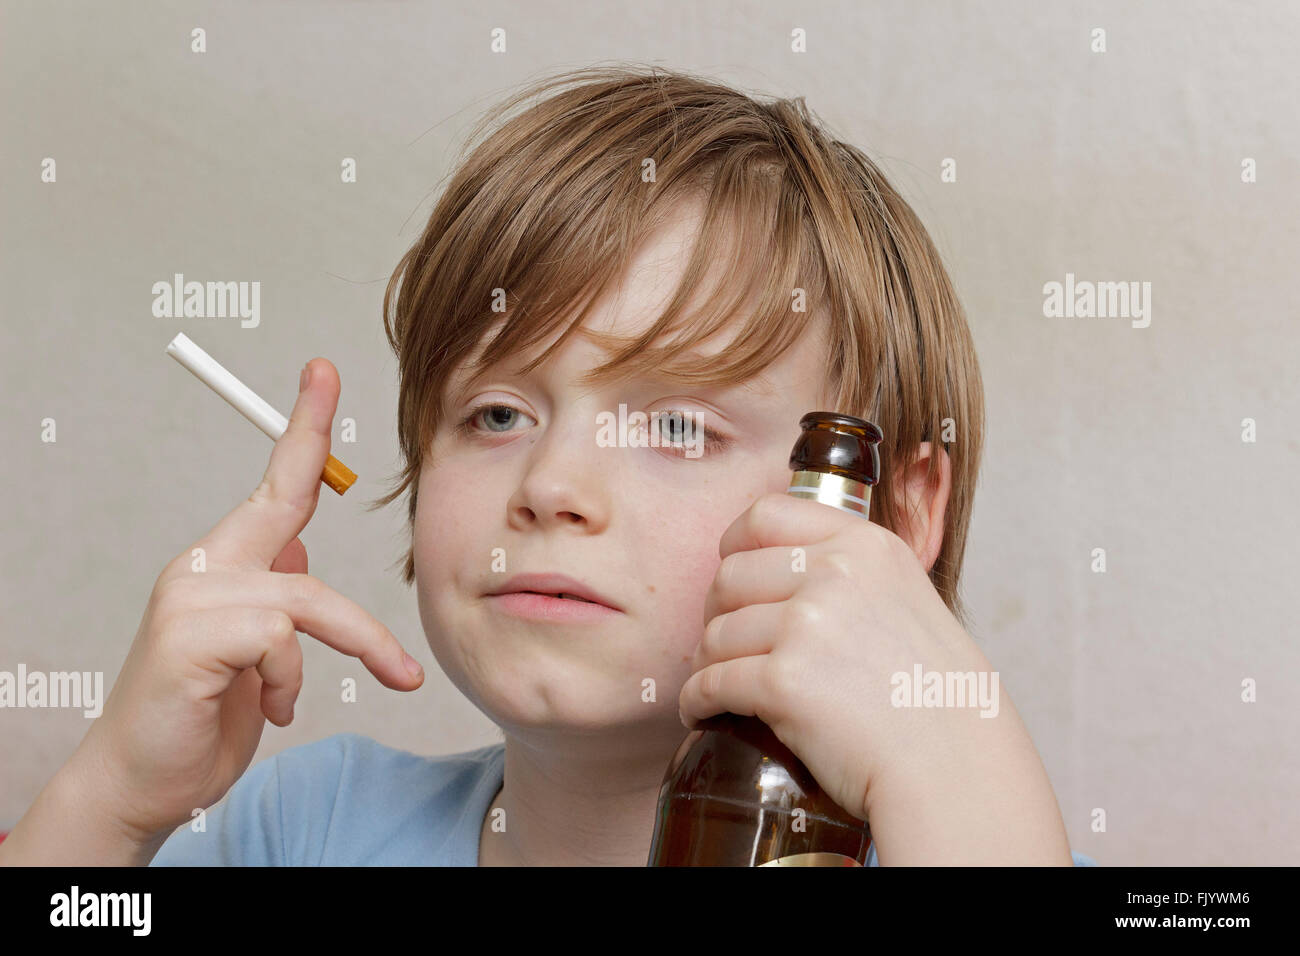 Photo - Alamy Drinking Beer Smoking Boy Underage And Stock 97728518